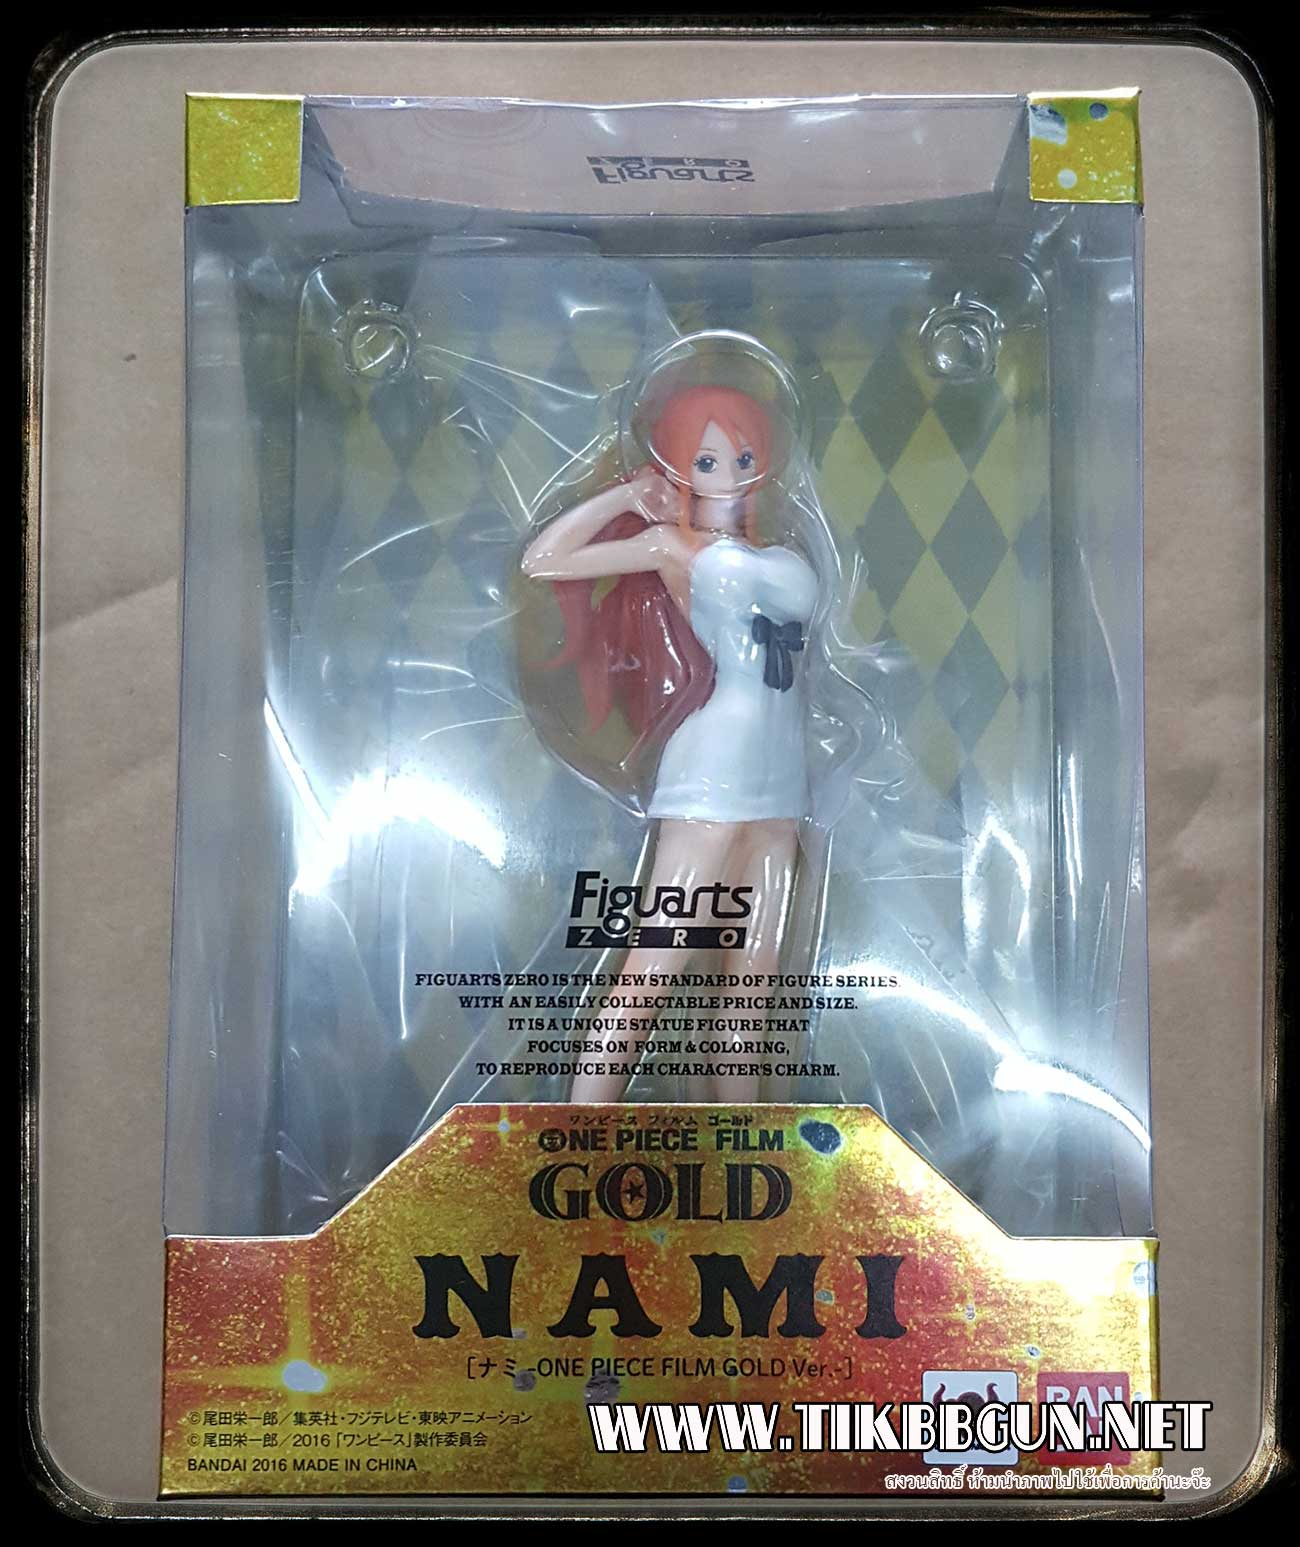 Figuarts ZERO Nami ONE PIECE FILM GOLD Ver. by Bandai (BANN08752)